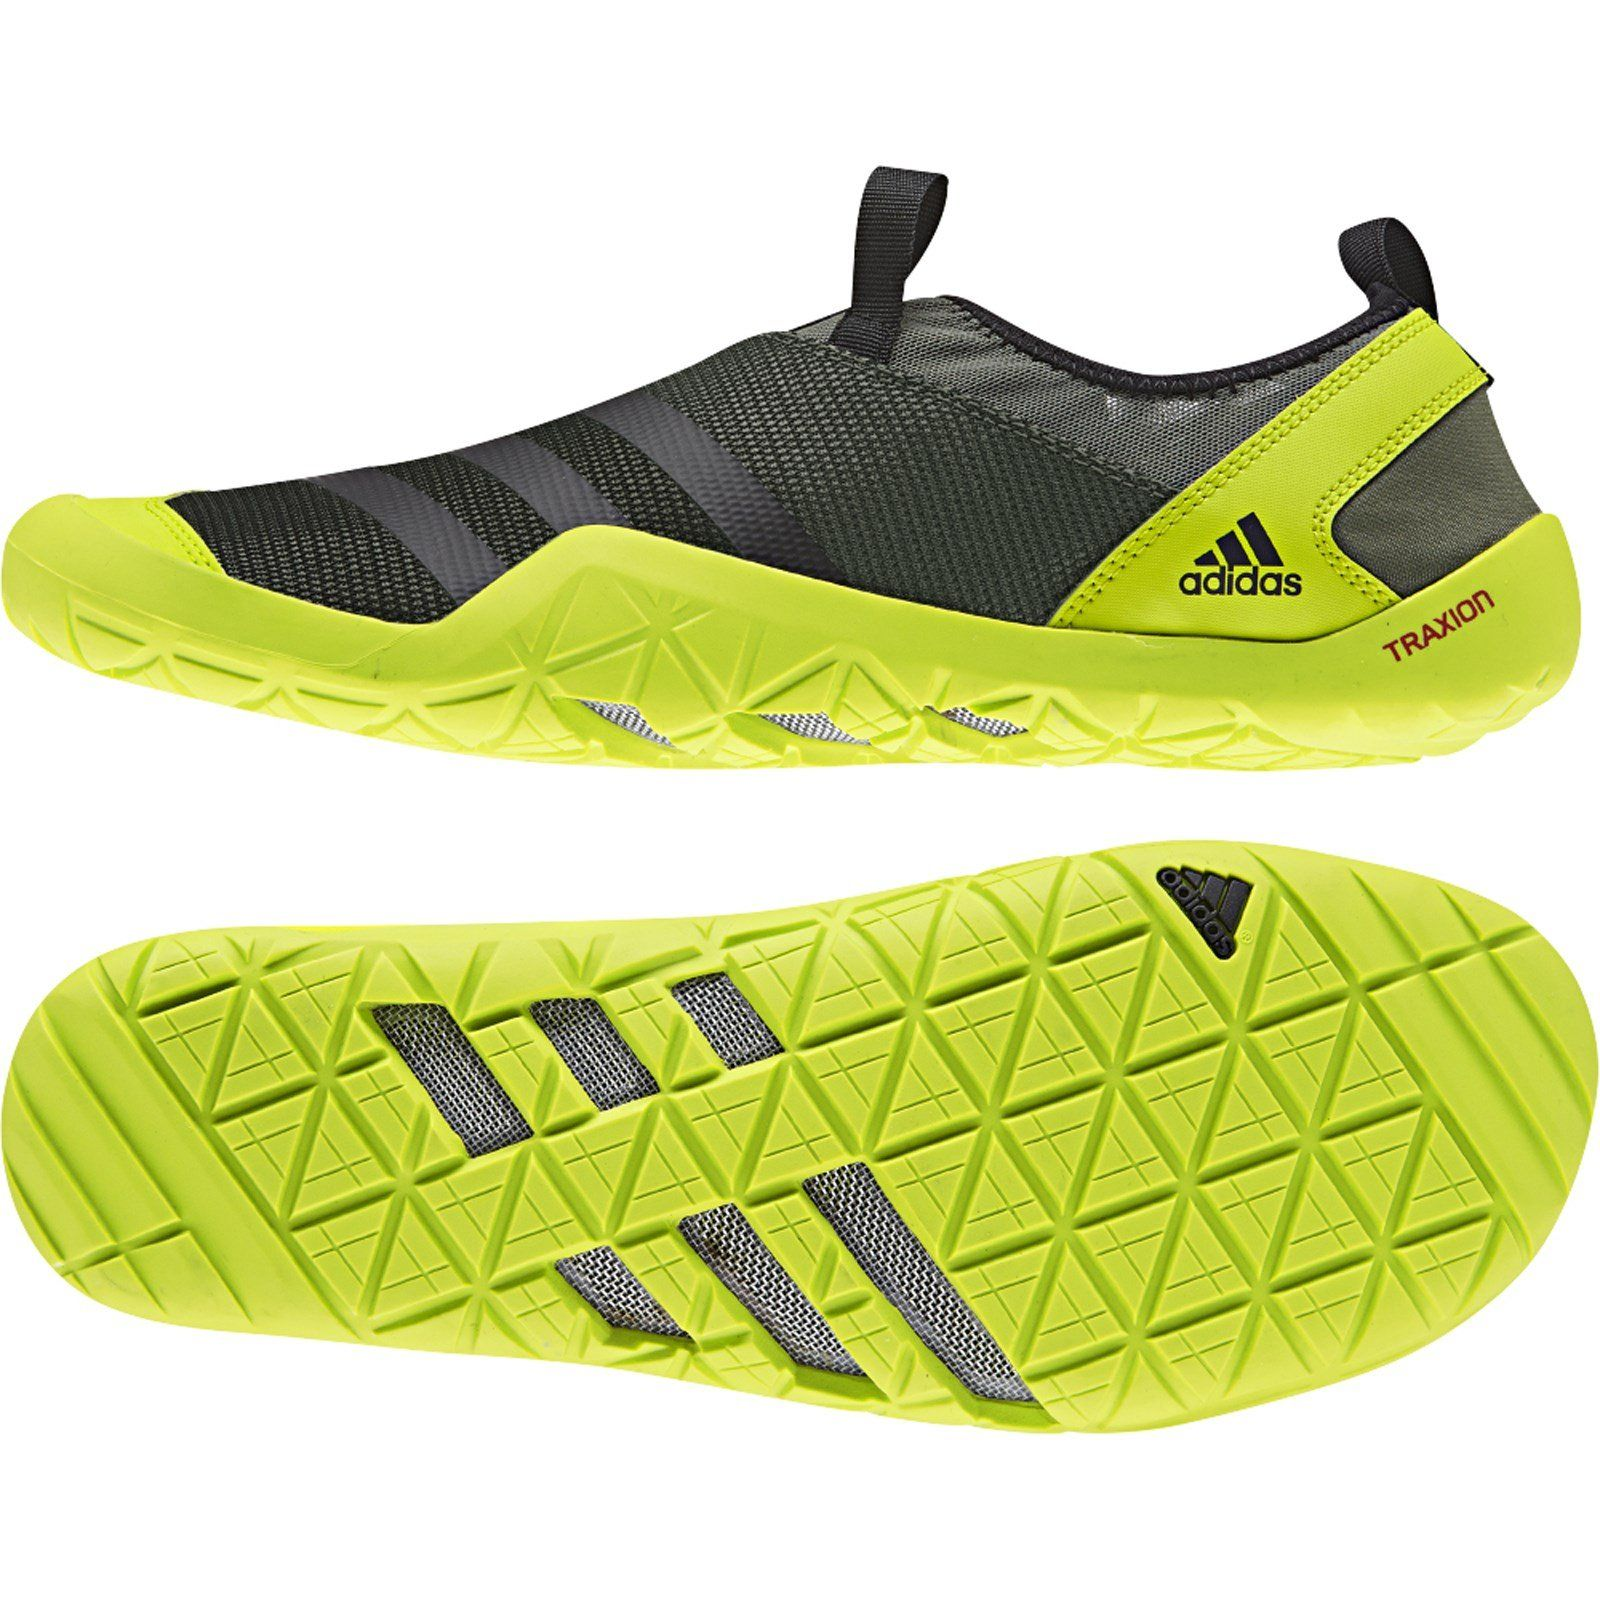 adidas climacool jawpaw slip on water shoes mens